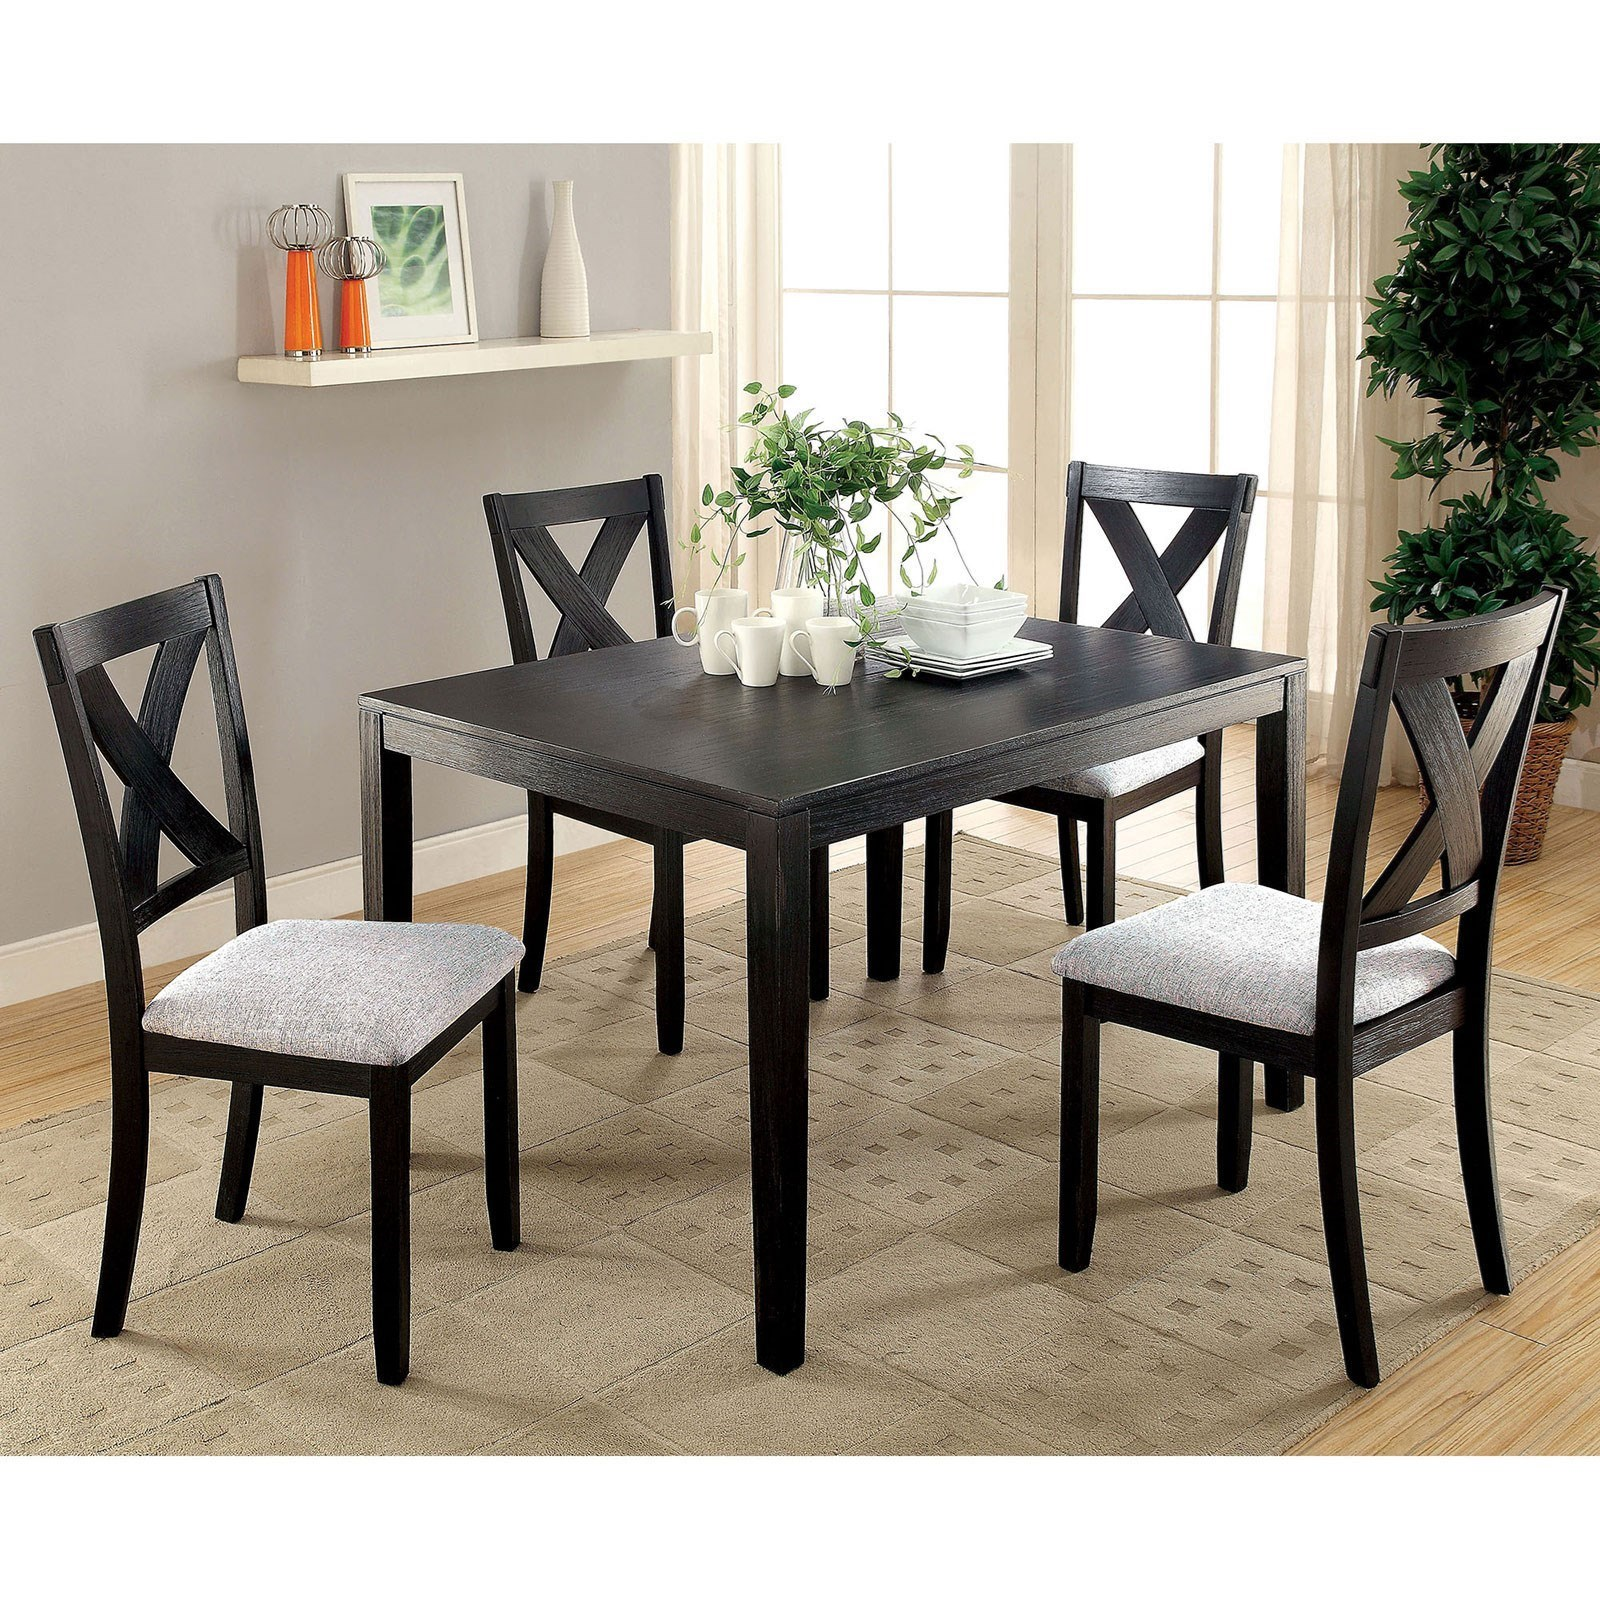 Glenham 5 Piece Dining Table Set by Furniture of America at Rooms for Less